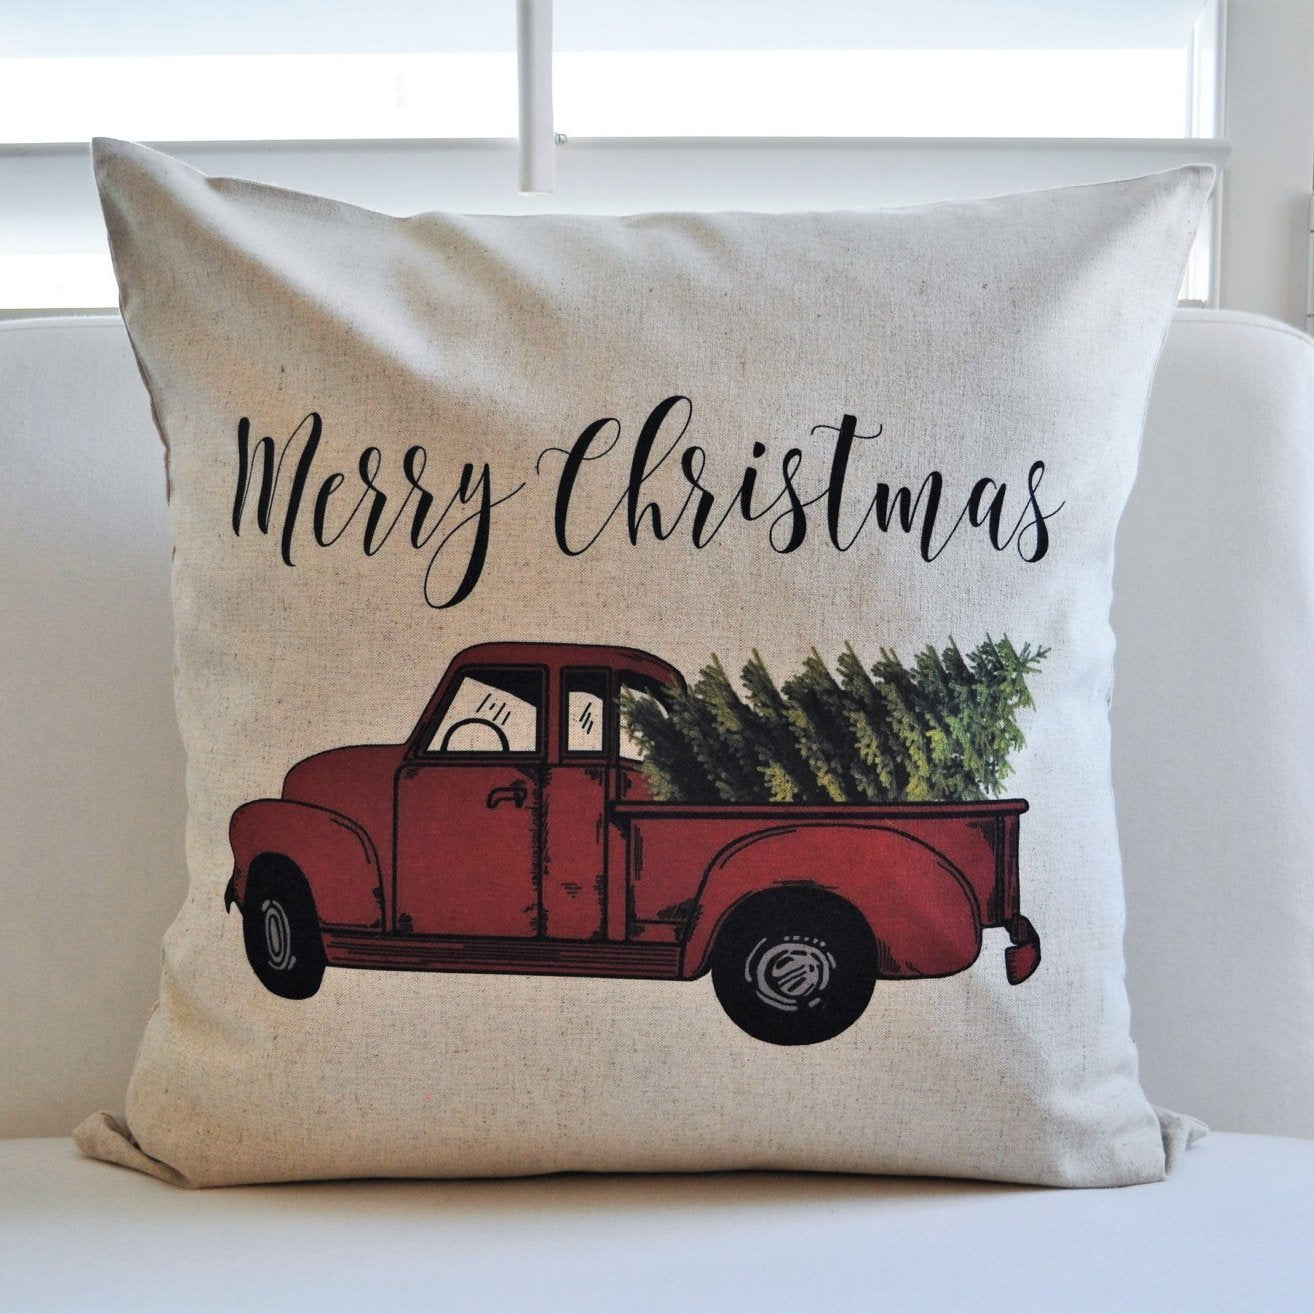 Vintage Red Truck Christmas Decor.Vintage Red Truck Christmas Tree Pillow 18x18